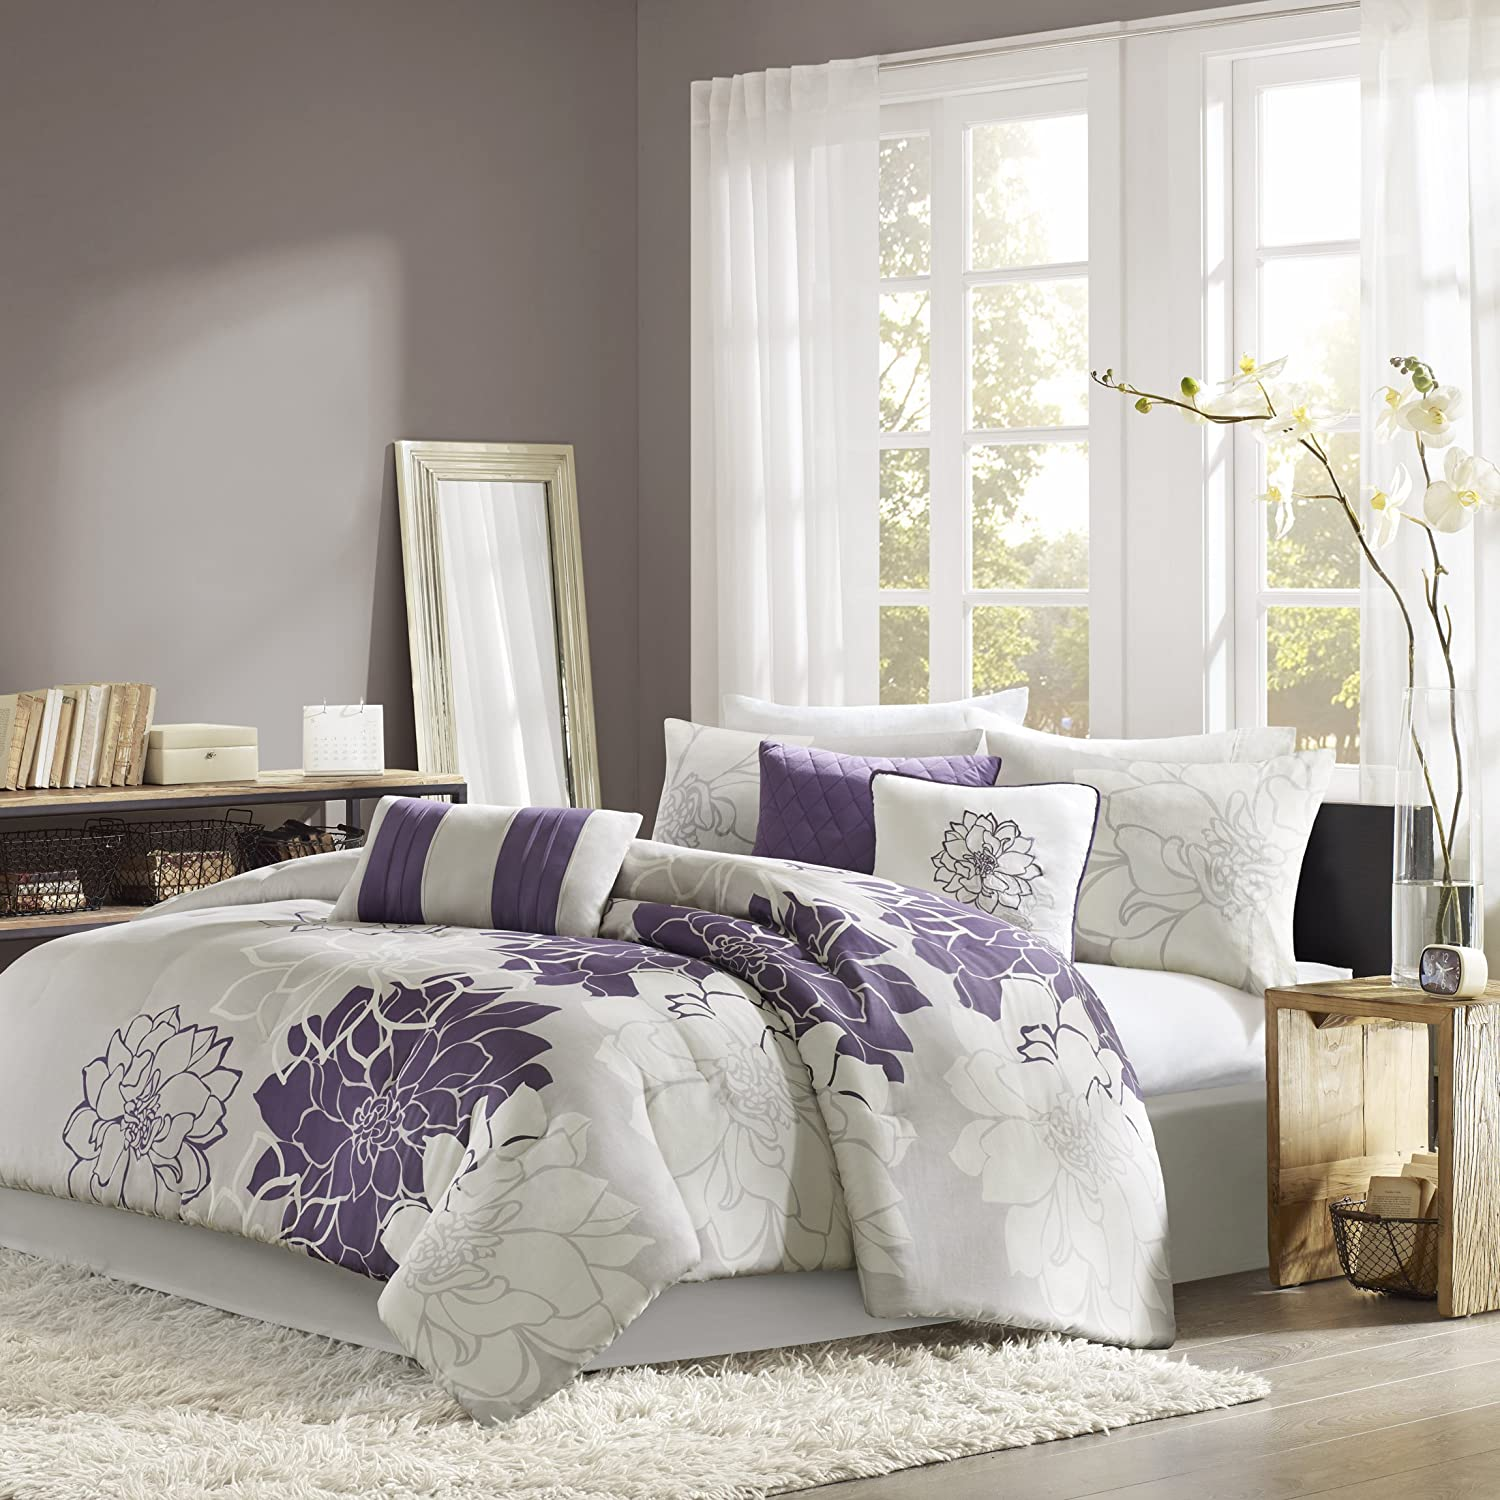 extraordinary color bedding sets stunning bedroom walmart appealing comforters purple king multi decoration ideas ki sheets comforter medallion size twin bed chic for blue queen geometric